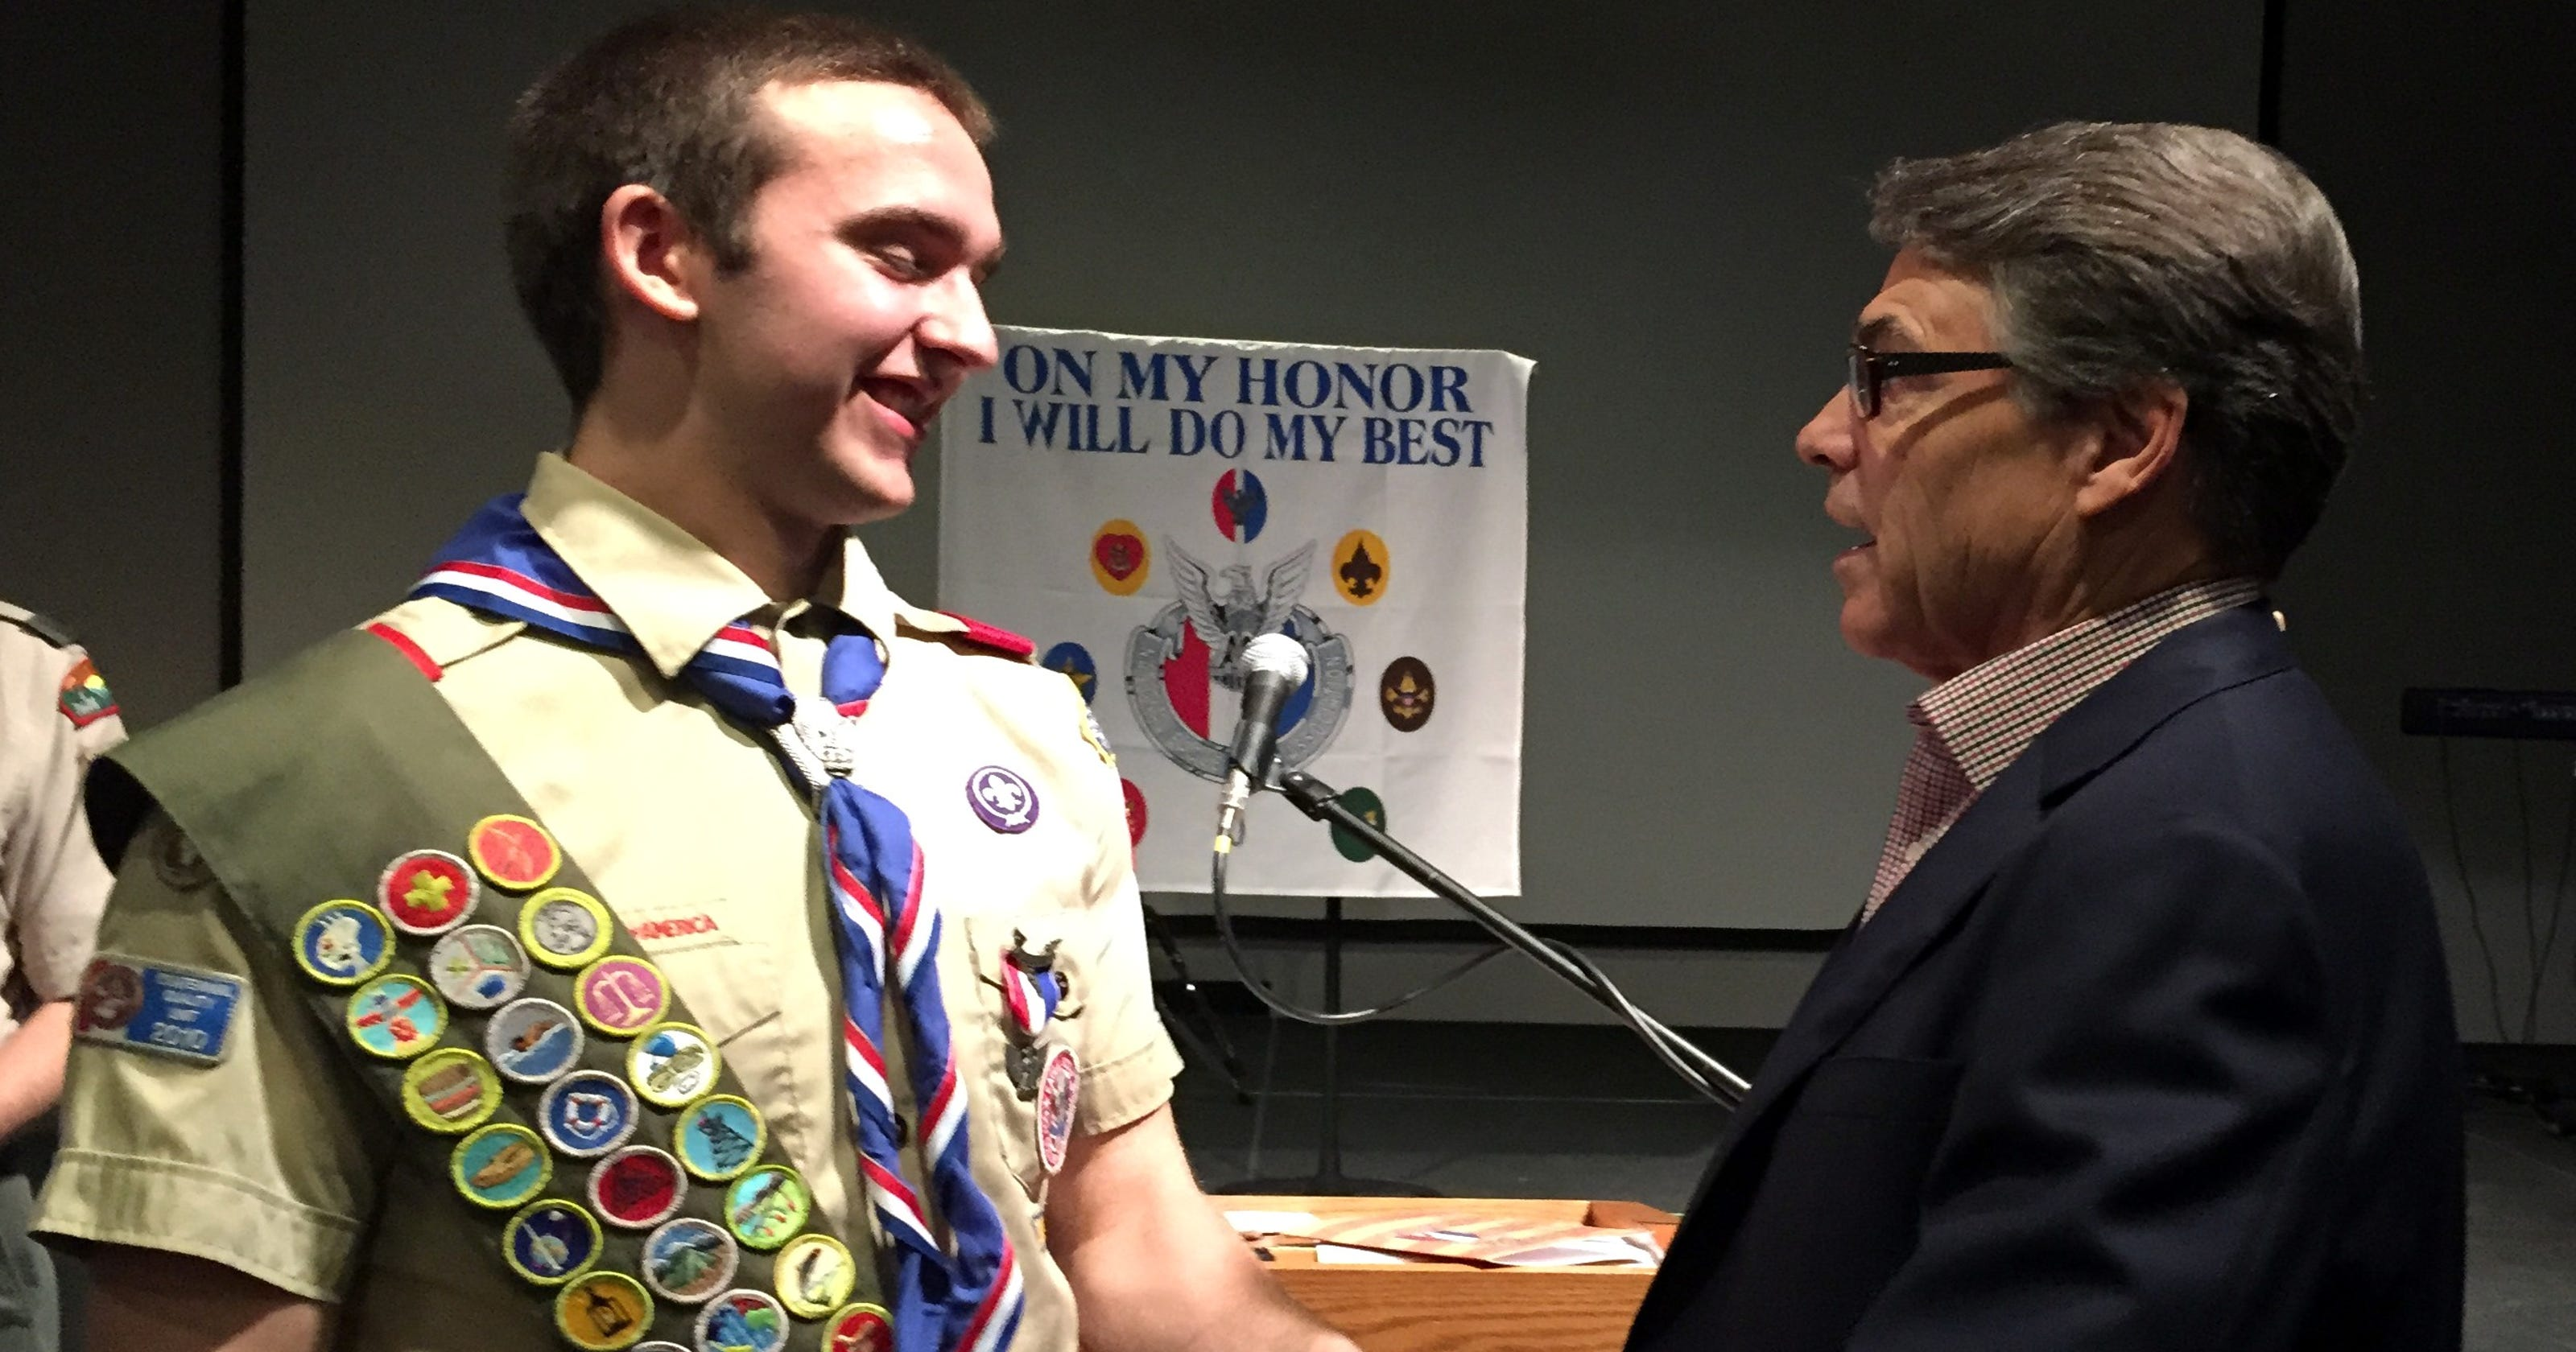 What three Eagle Scout politicians said about Scouting |Eagle Scout Politicians